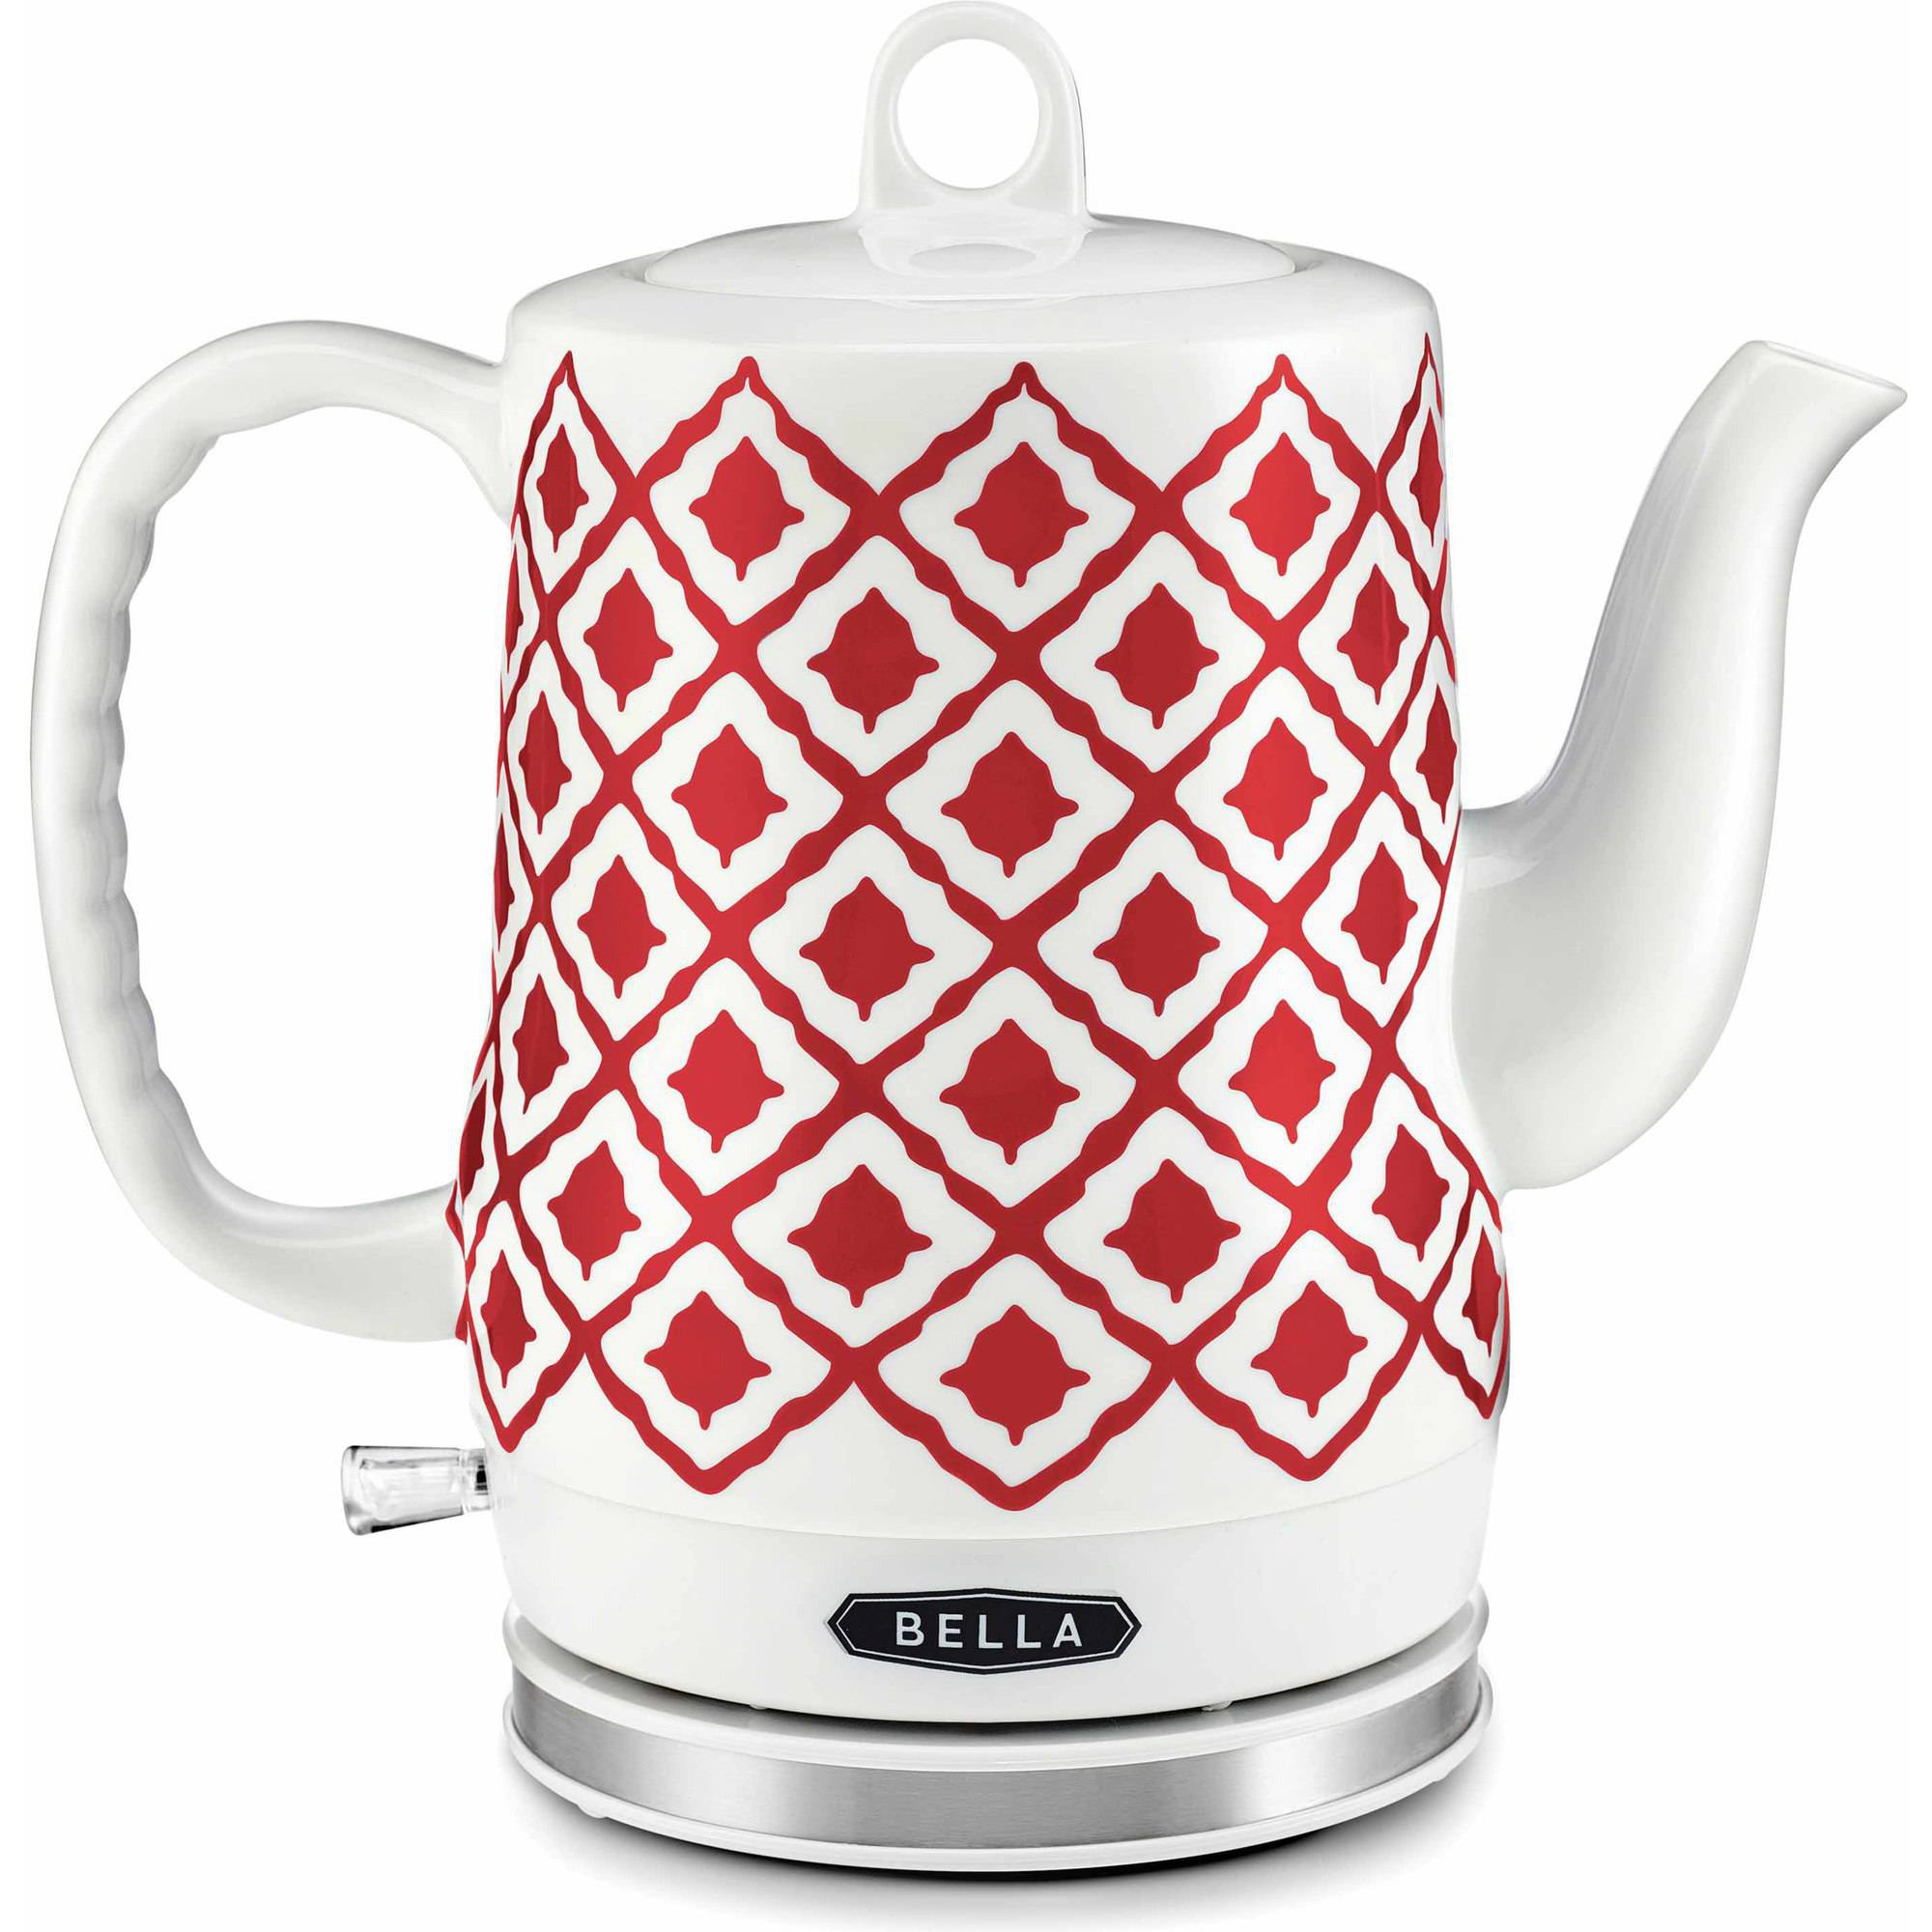 Bella Ikat 1.2-Liter Electric Ceramic Kettle, Red by Sensio